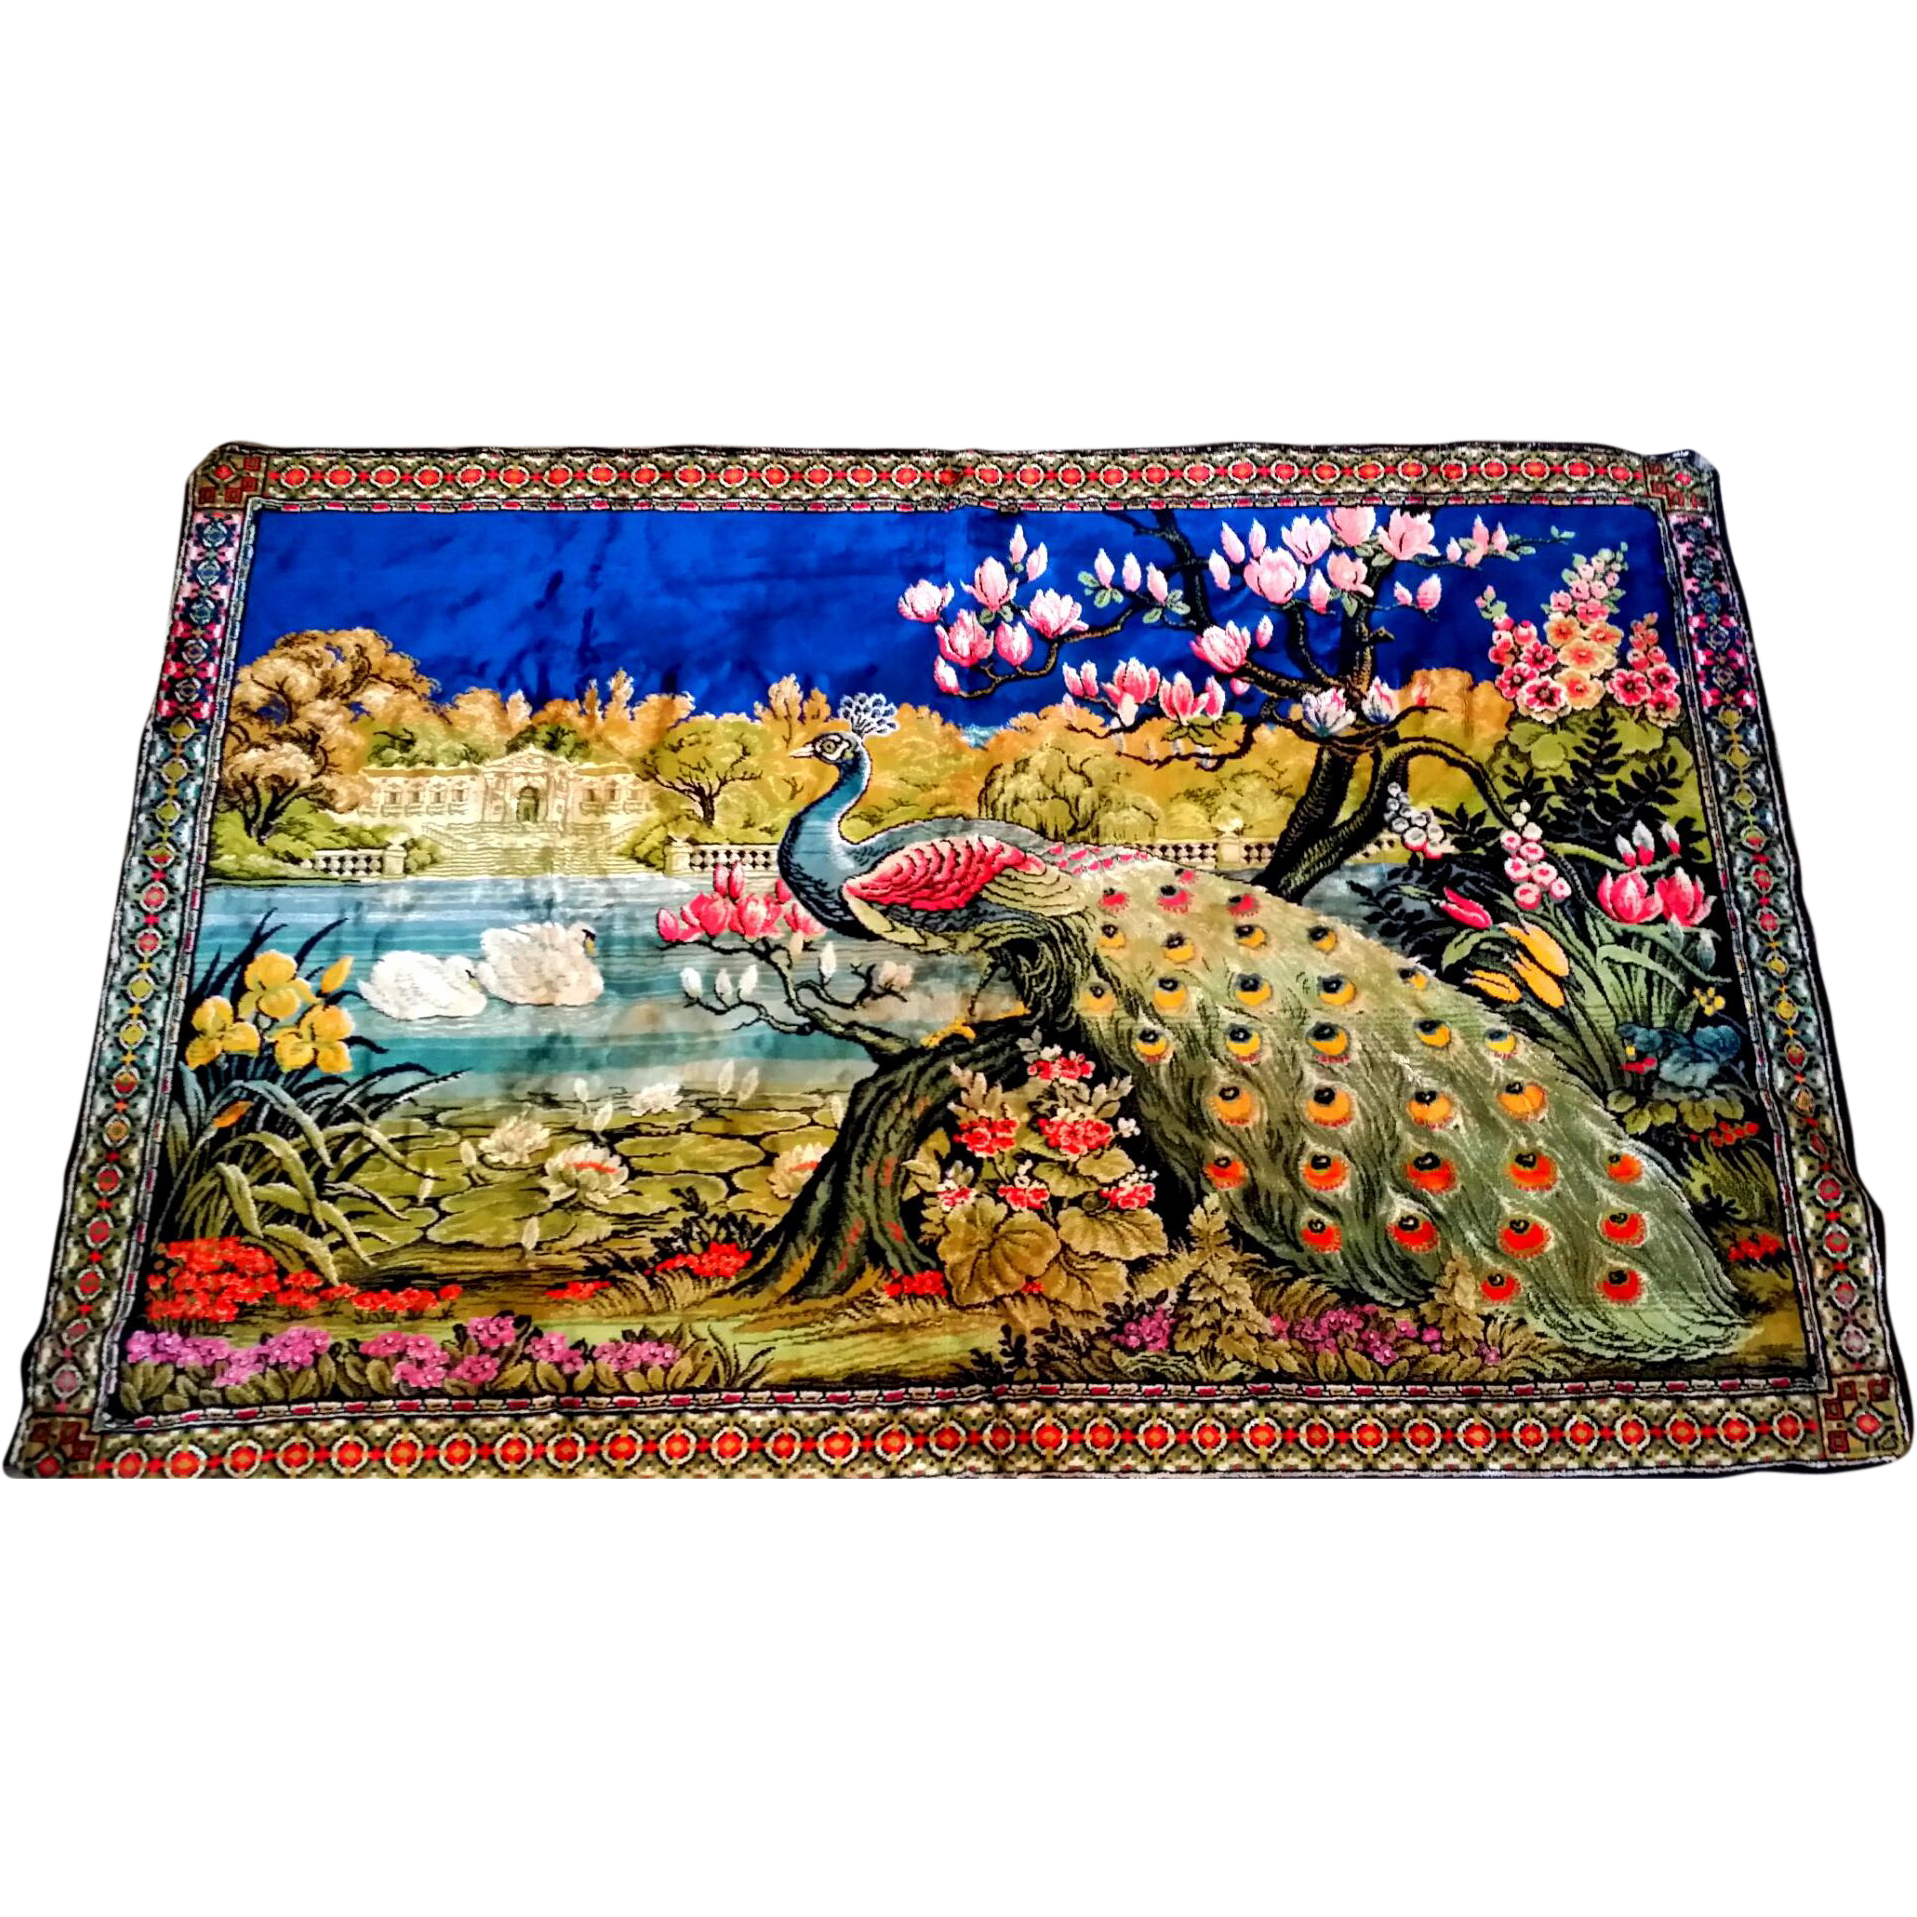 Peacock Wall Hanging Rug Tapestry Swans From